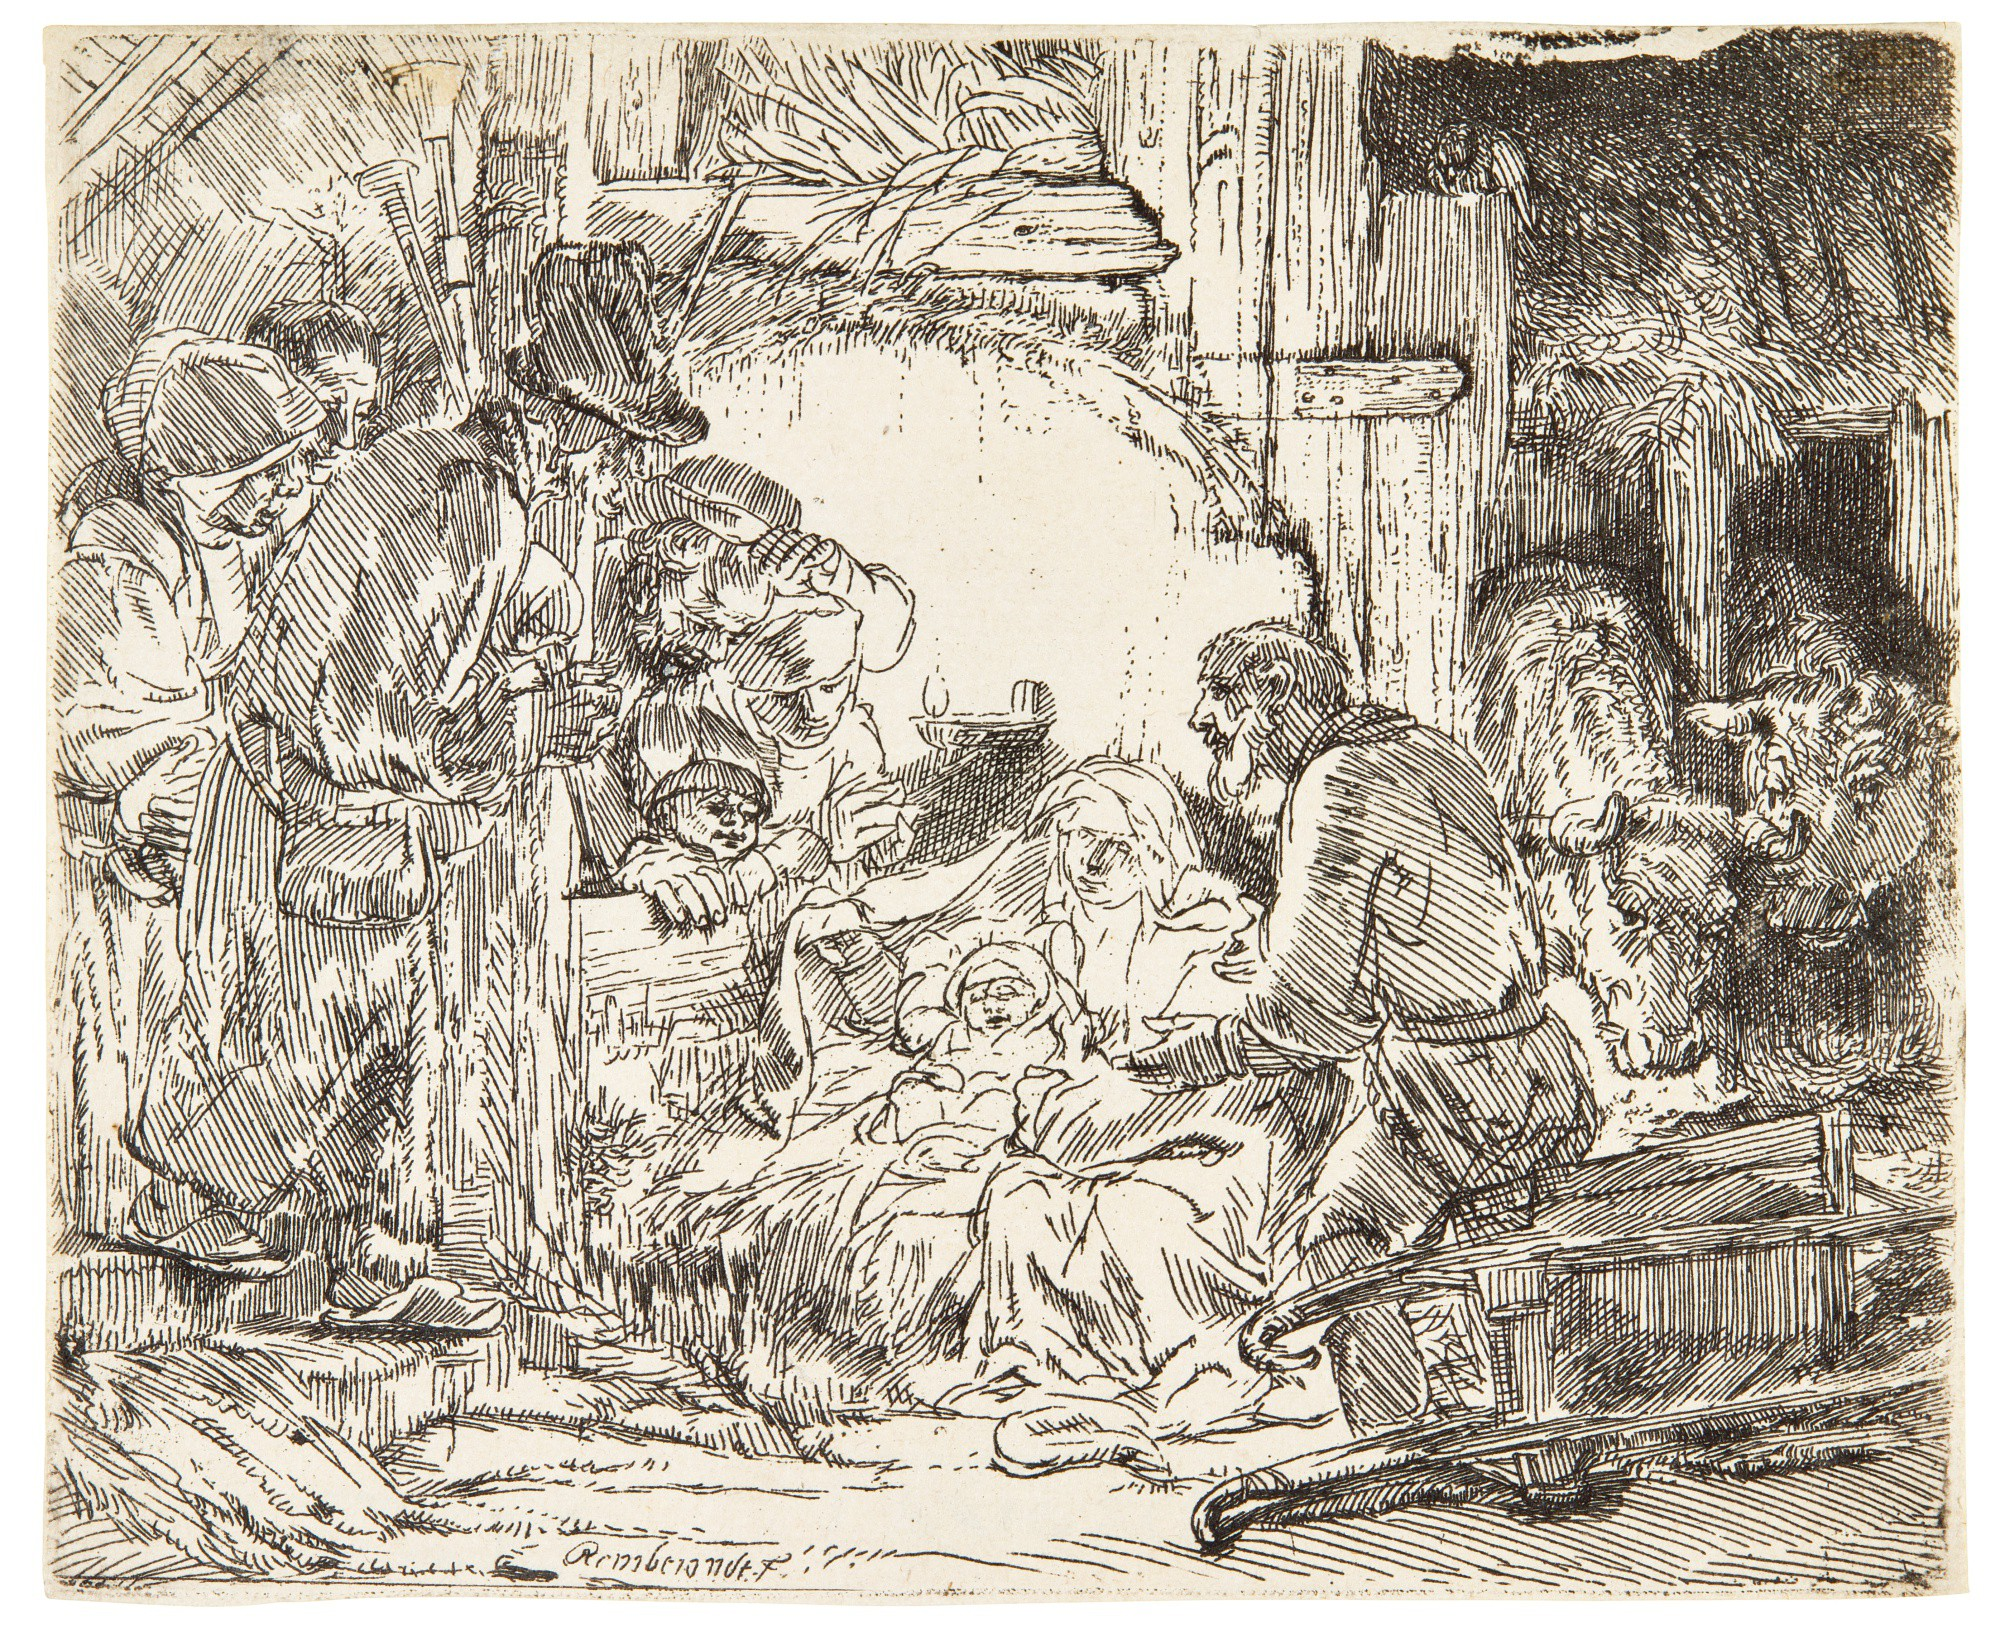 REMBRANDT HARMENSZ. VAN RIJN | THE ADORATION OF THE SHEPHERDS: WITH THE LAMP (B., HOLL. 45; NEW HOLL. 279; H. 273)